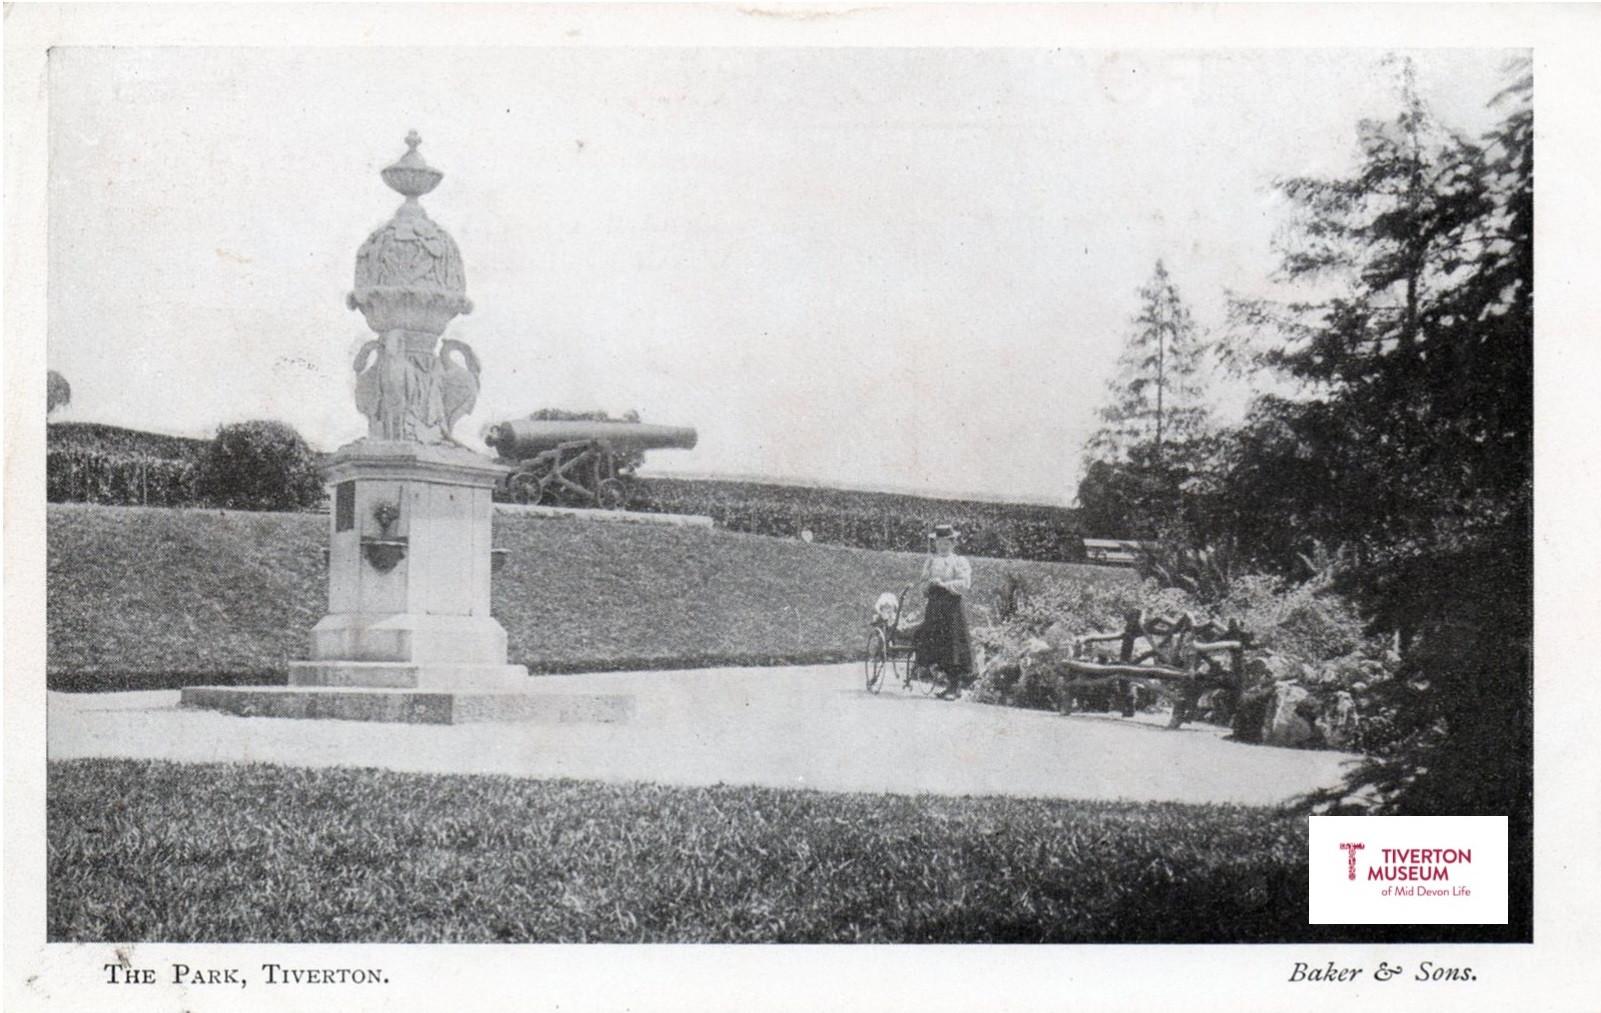 A large ornamental drinking fountain in a park with people in Edwardian dress.